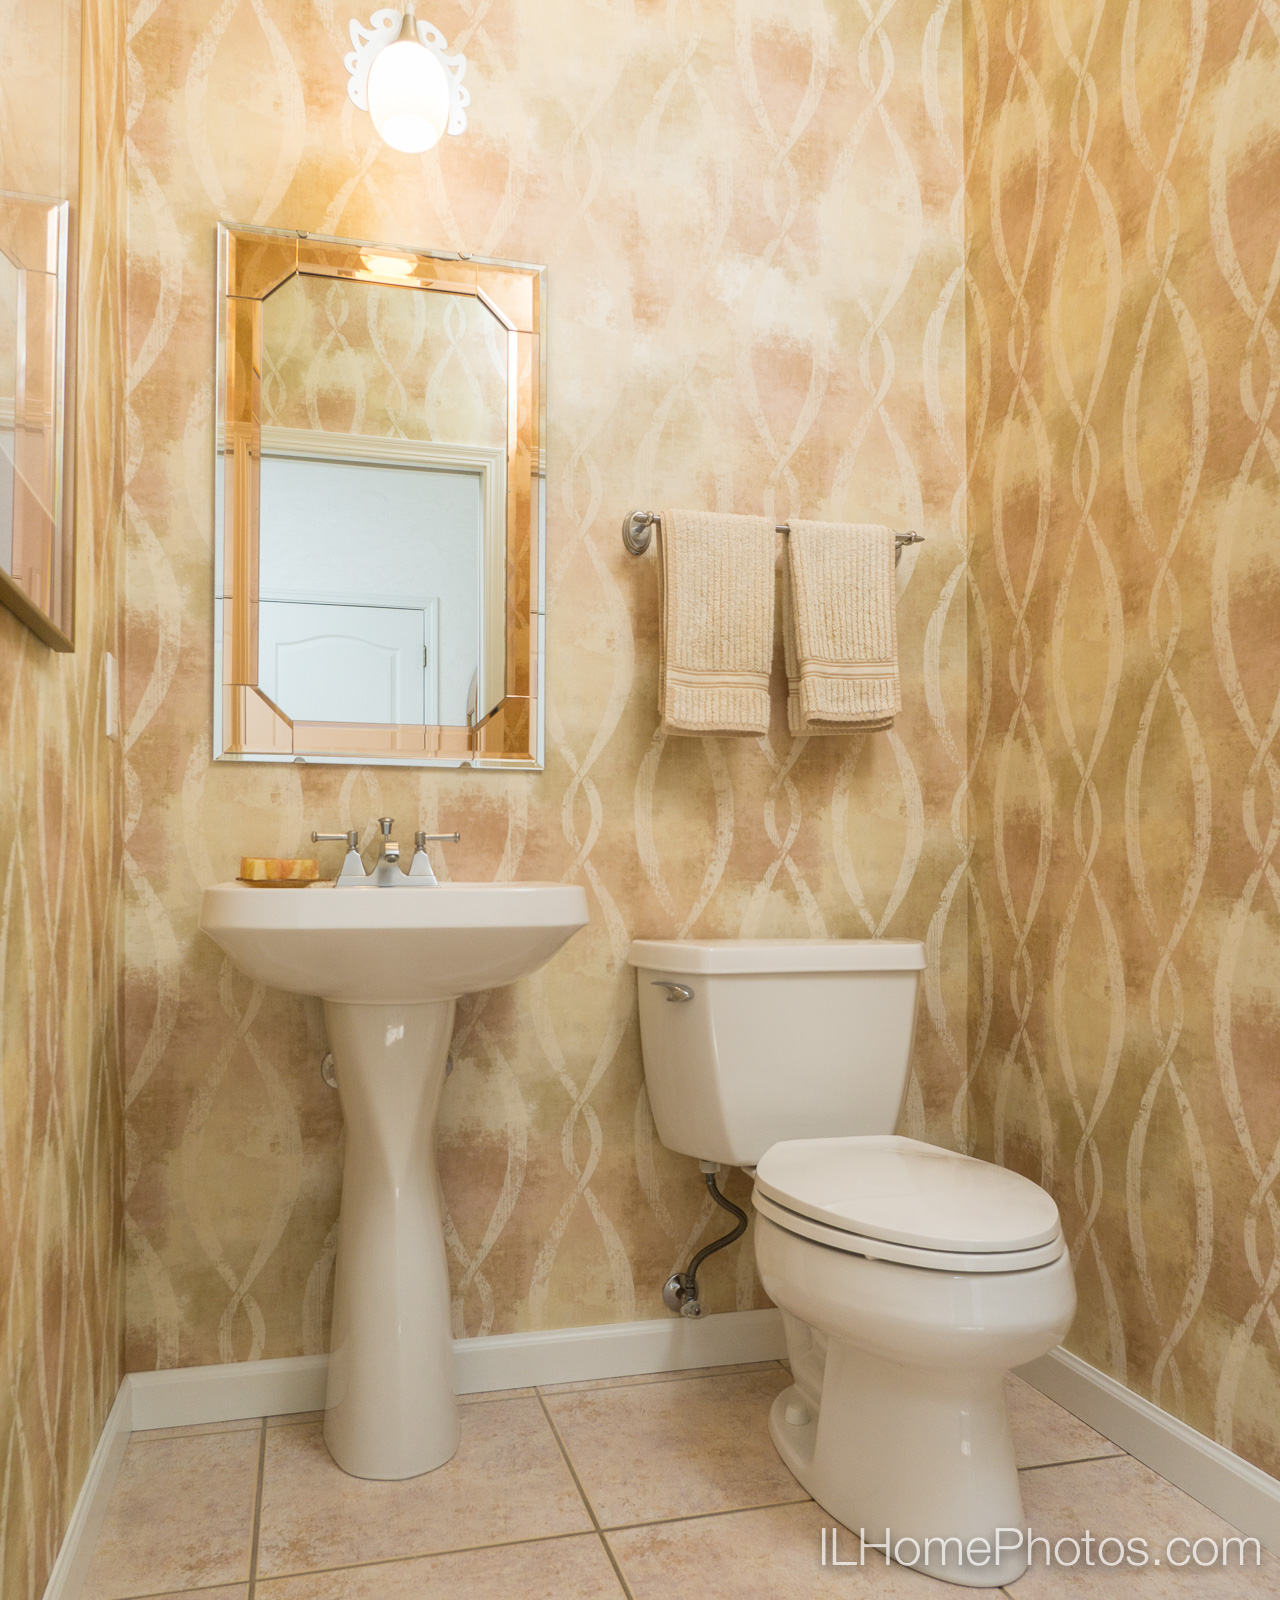 Interior bathroom photograph for real estate in Pekin/Peoria :: Illinois Home Photography by Michael Gowin, Lincoln, IL